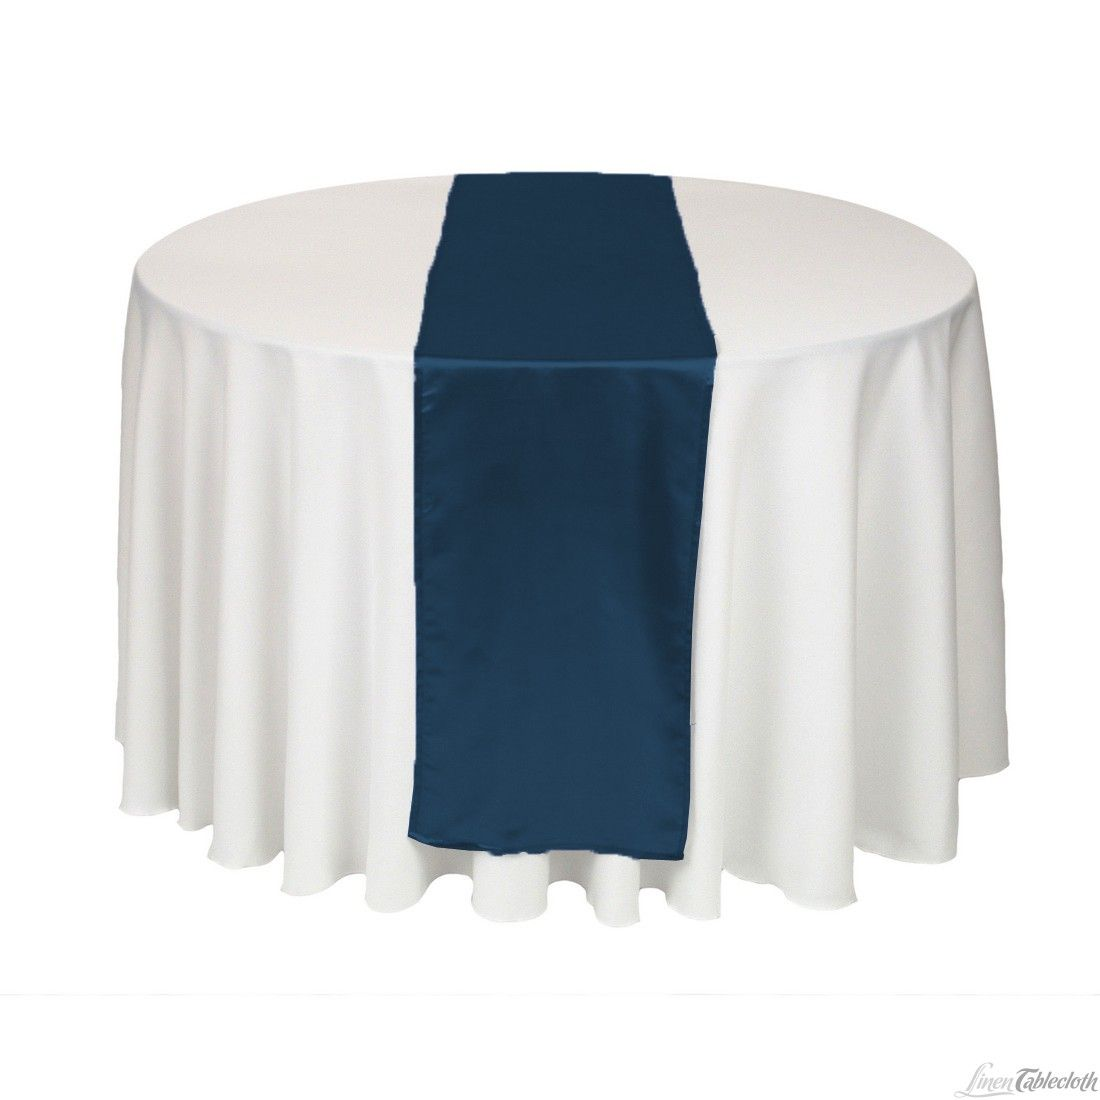 Buy 14 x 108 inch navy blue satin table runner for your for Where can i buy table linens